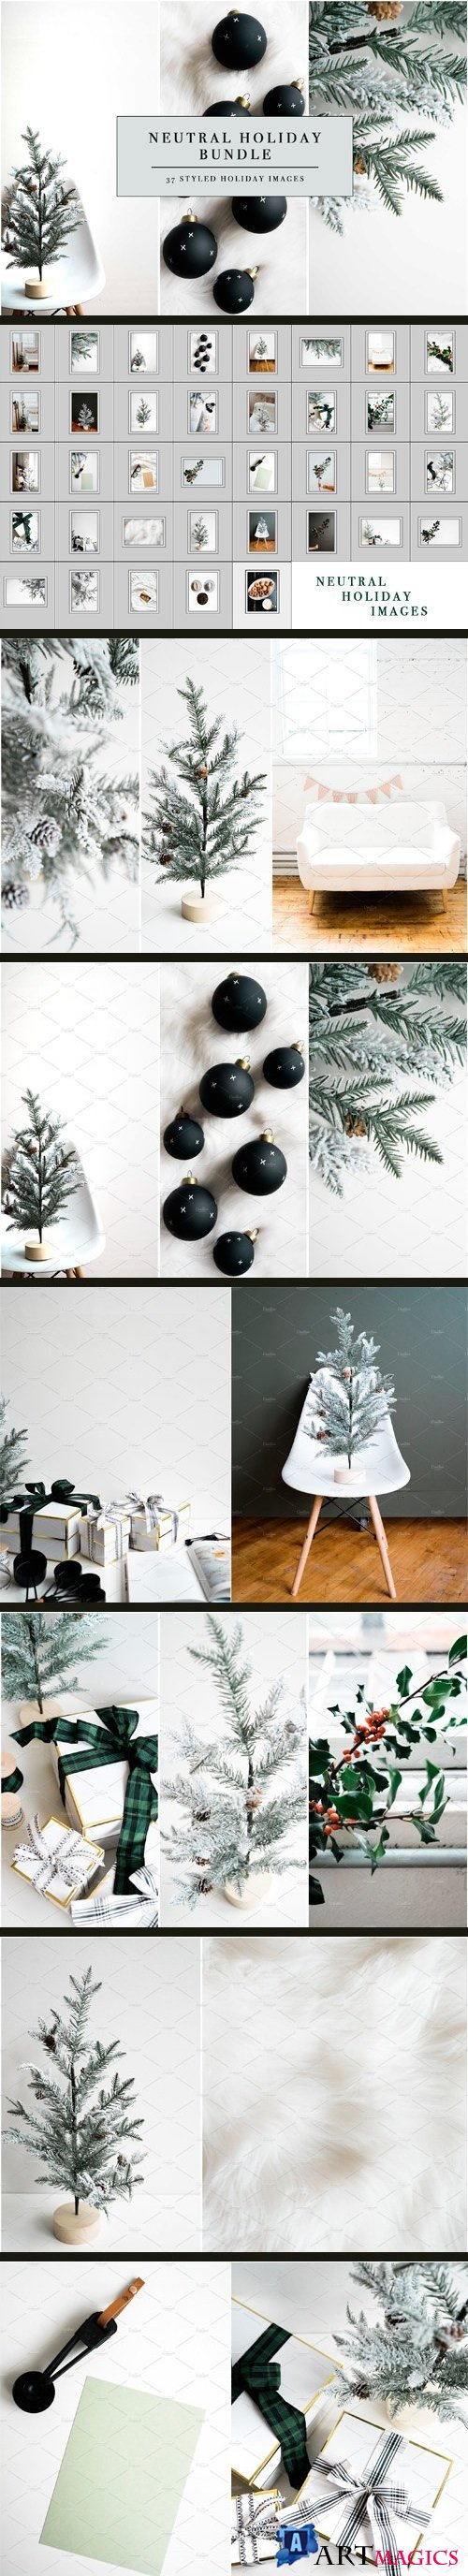 Christmas Styled Stock Images 2040473